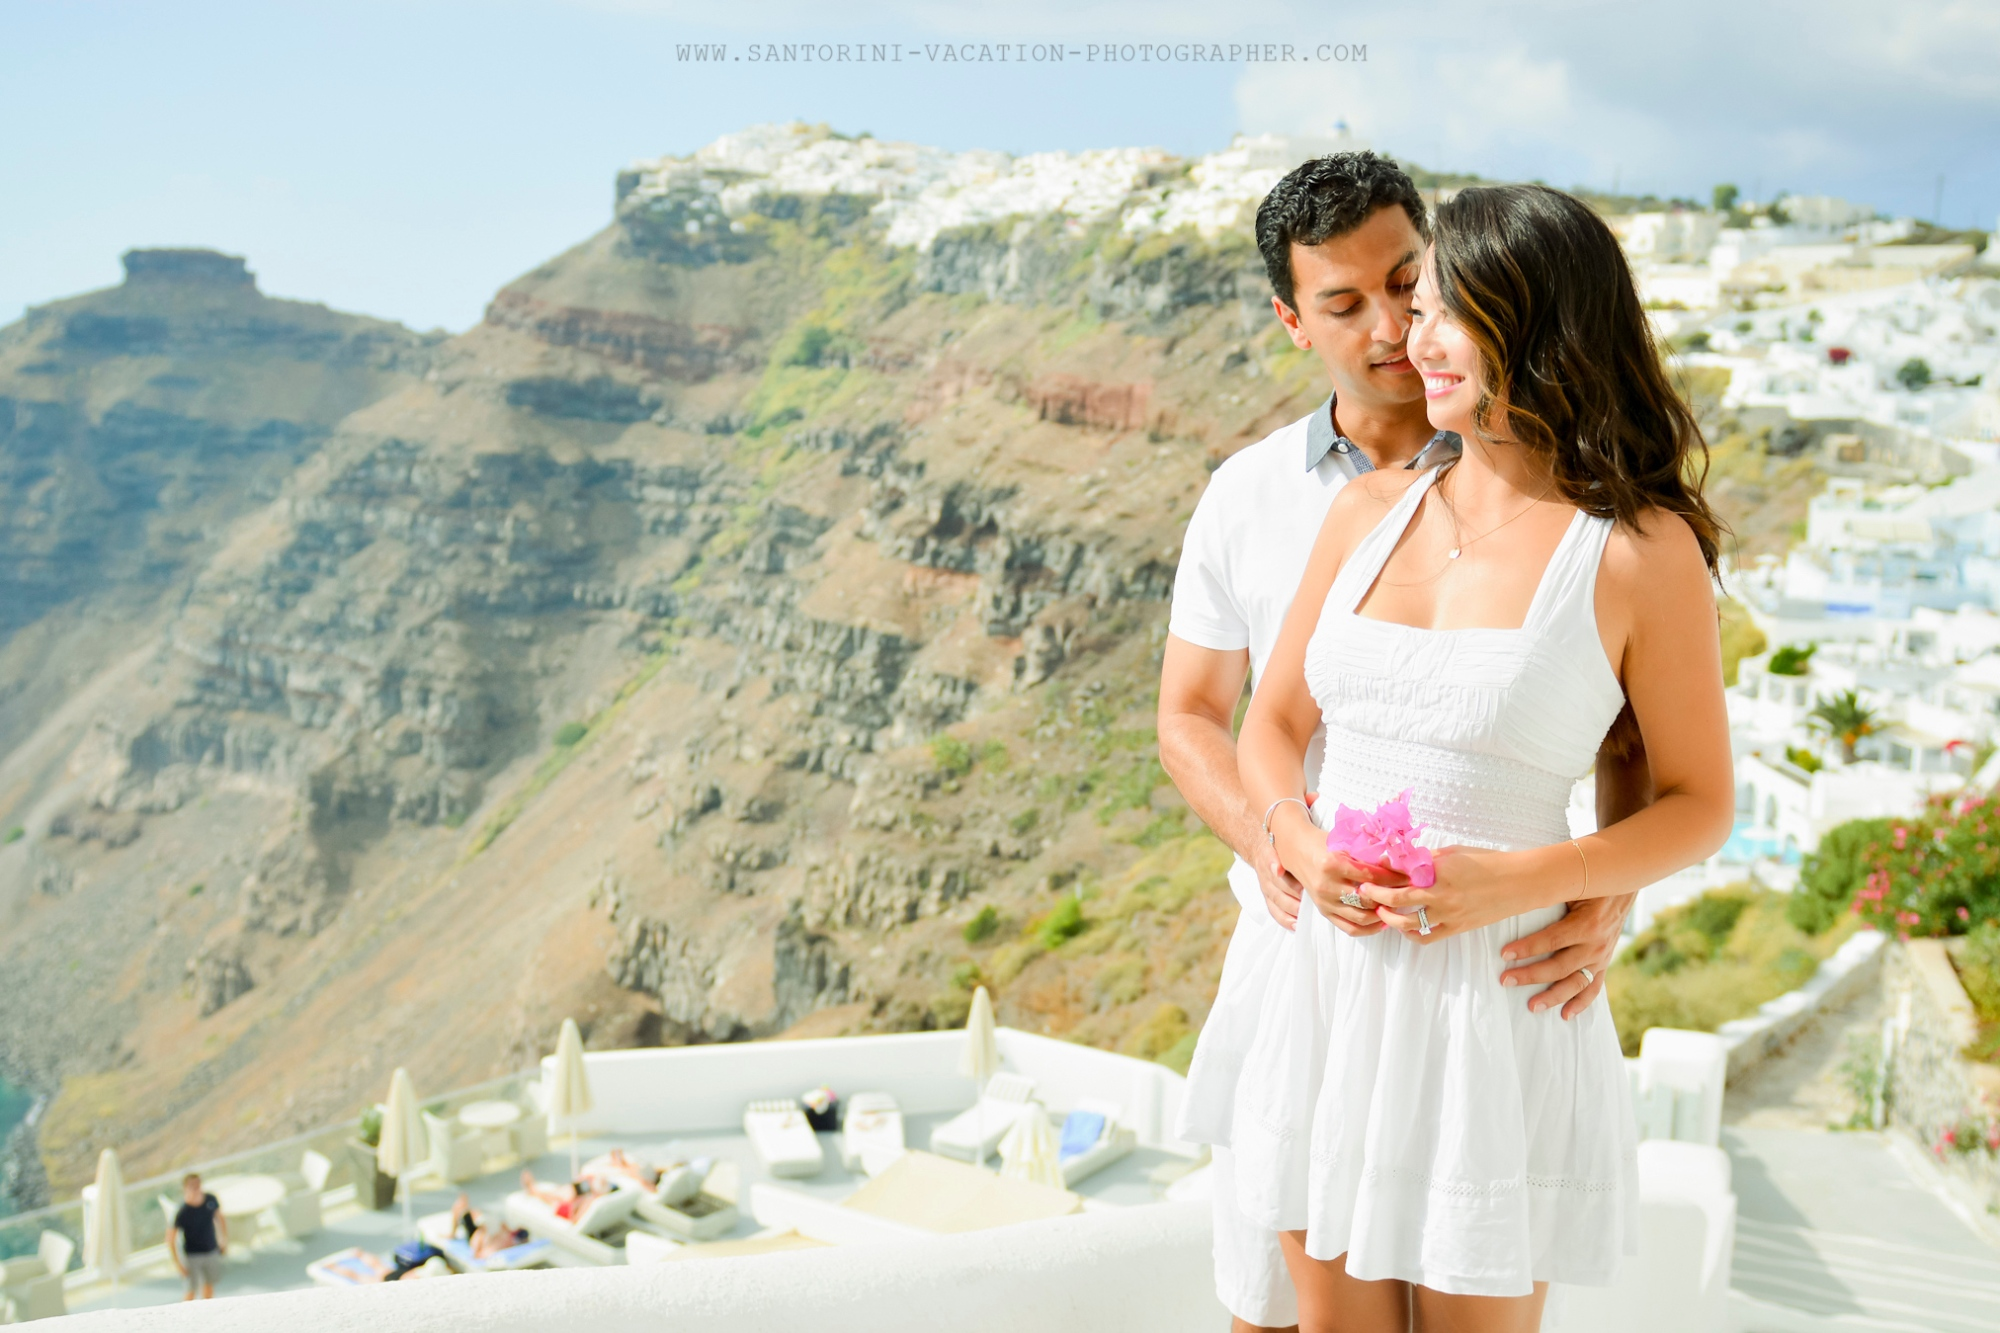 Santorini-photographer-Anna-Shulte-couples-engagement-photo-shoot-in-Greece-3